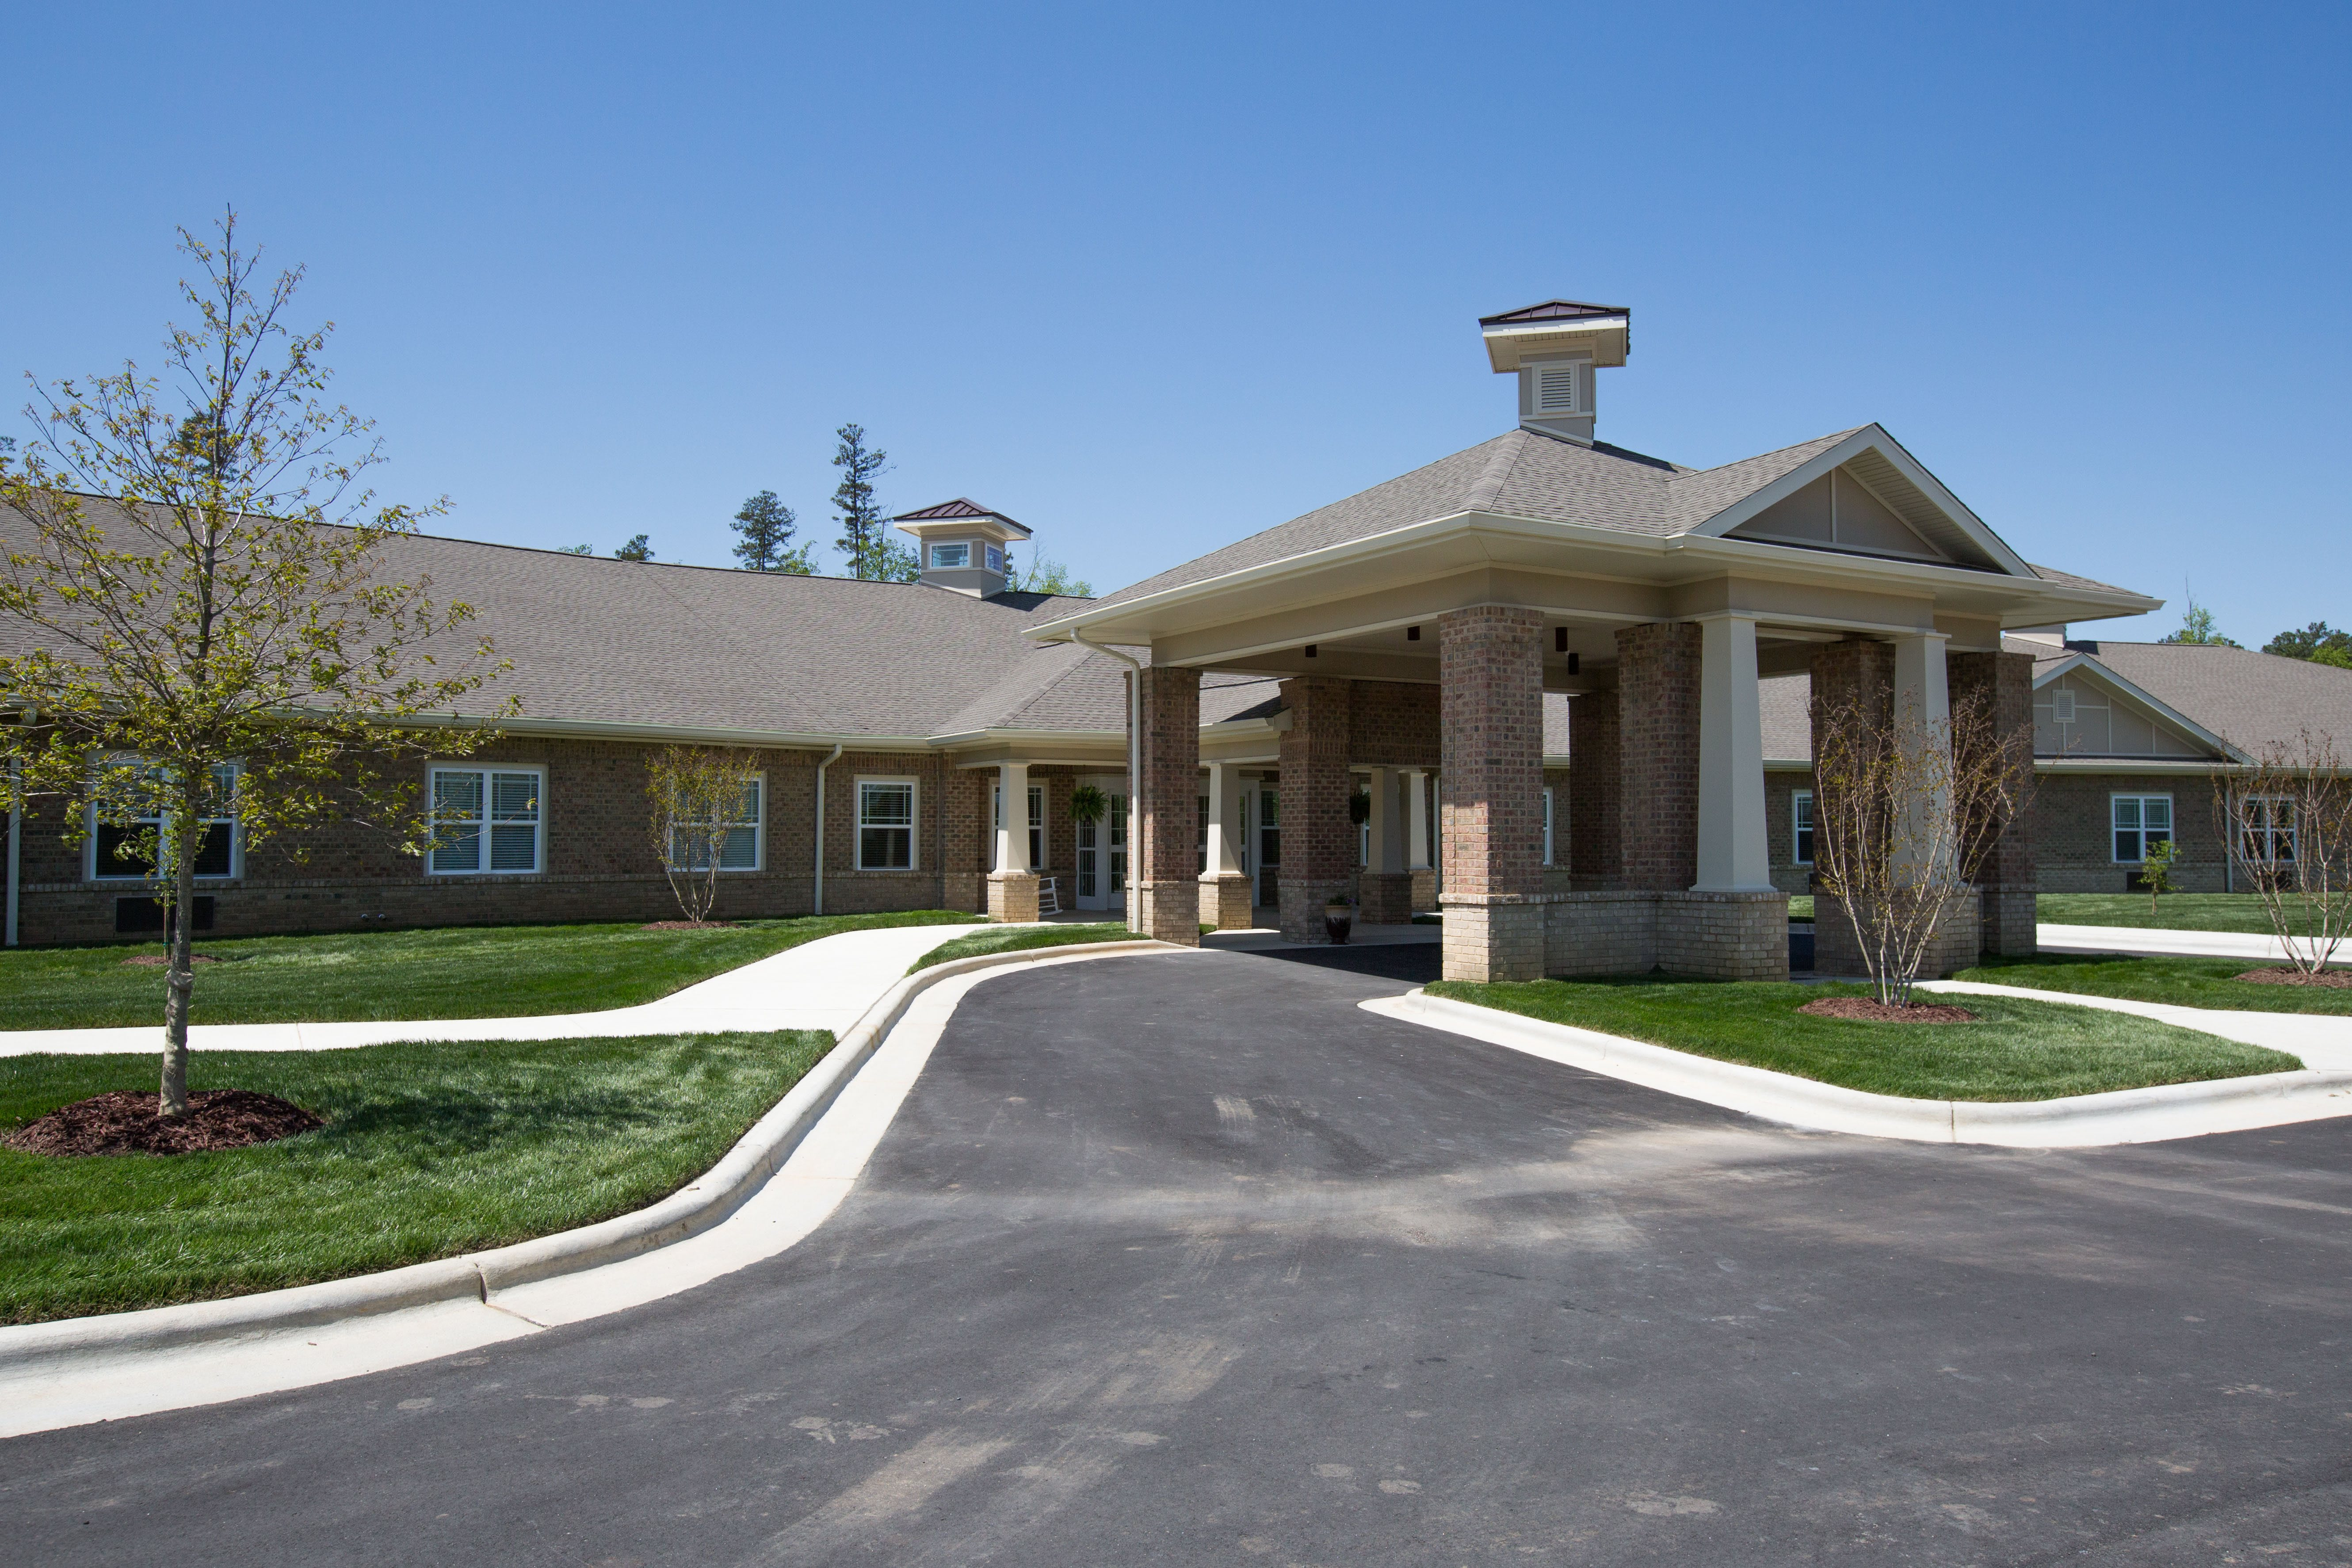 Photo 1 of Chatham Ridge Assisted Living